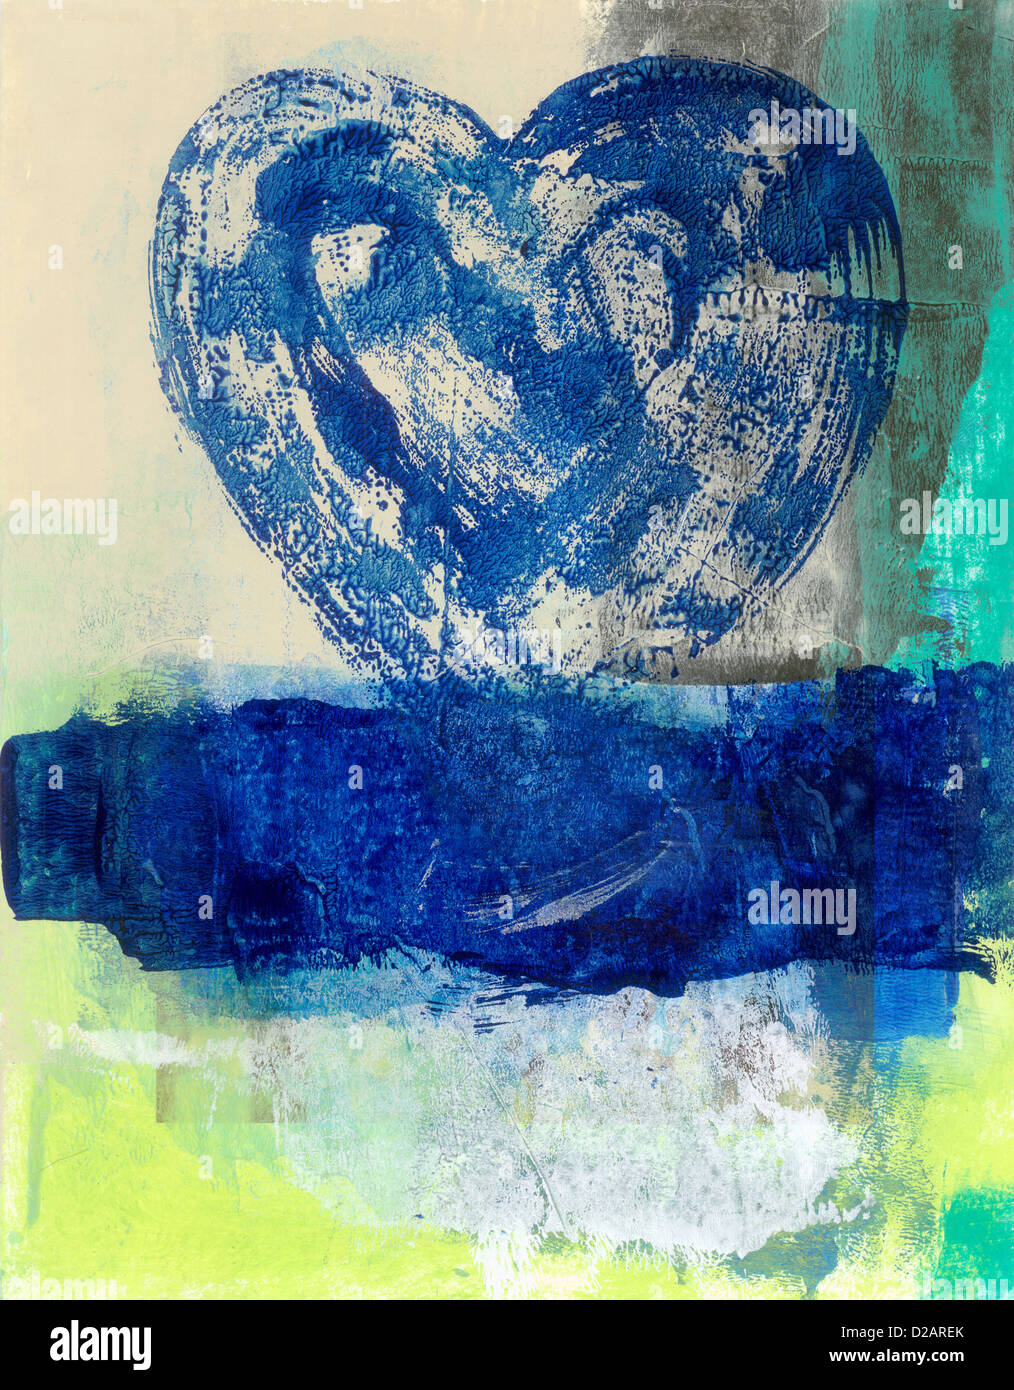 Abstract painting of a blue heart rising from a blue water. Stock Photo